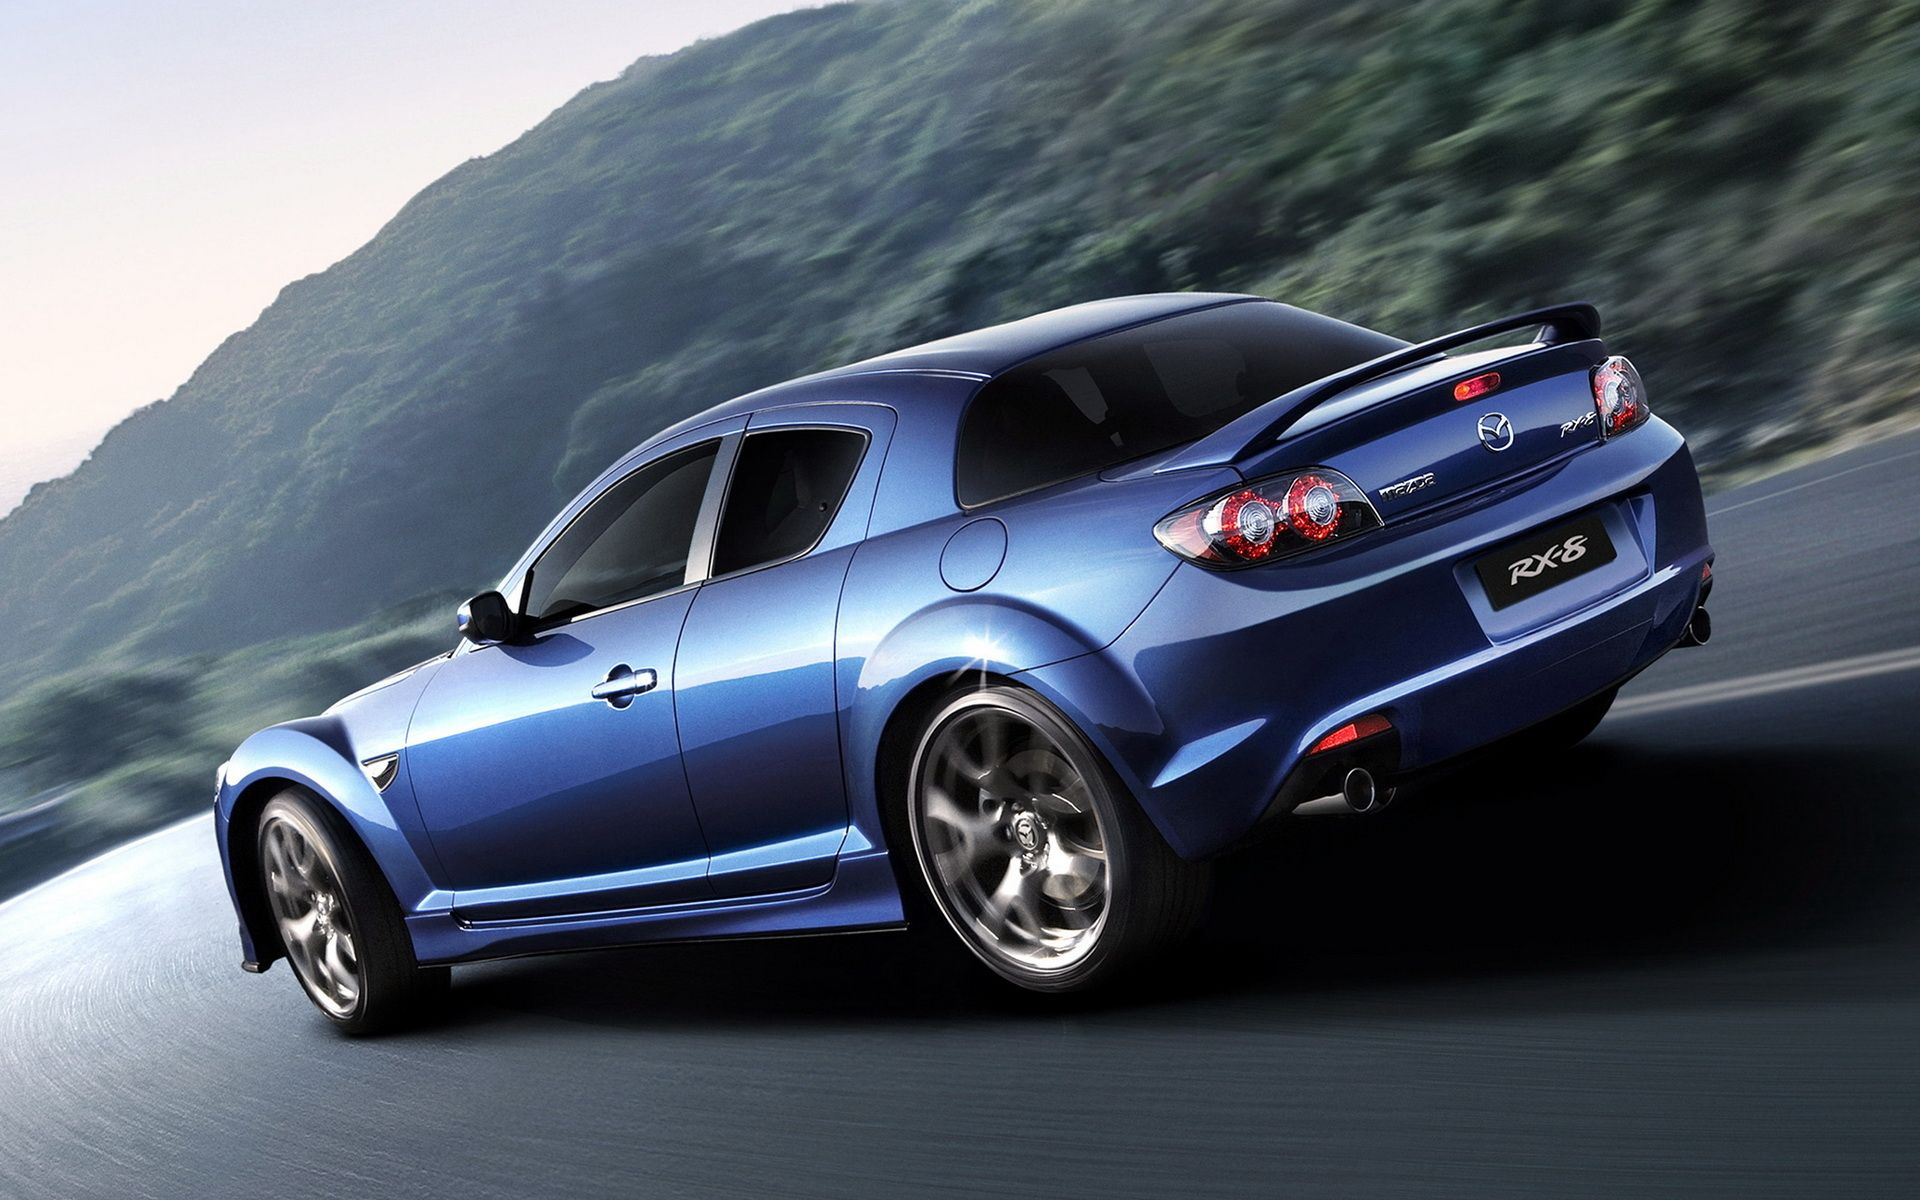 Mazda rx8 wallpapers find best latest mazda rx8 wallpapers for your pc desktop background mobile